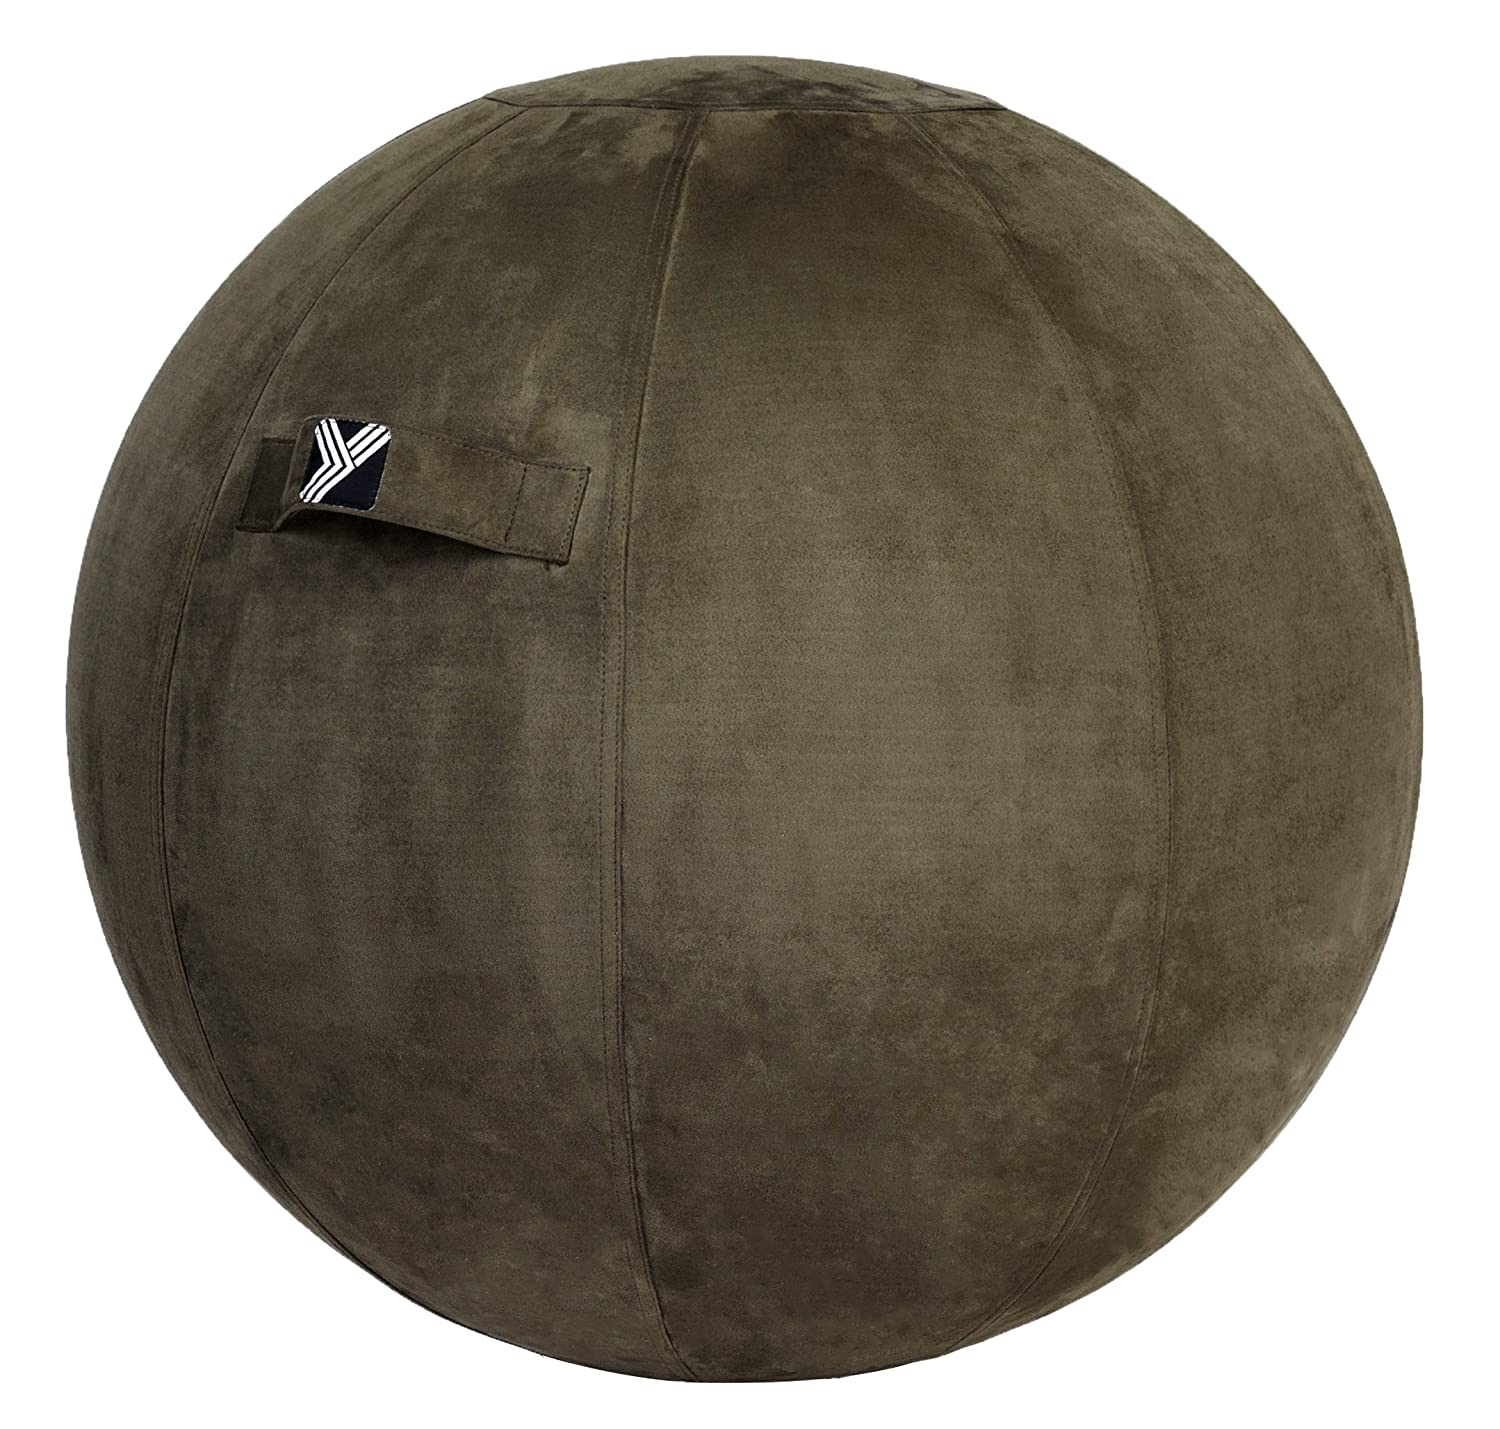 Yogivo - Exercise Ball Chair for Home, Office, Yoga, Stability, Fitness and Balance Training, Sitting Ball with Pump and Handle (Suede Series - Brown) LTD